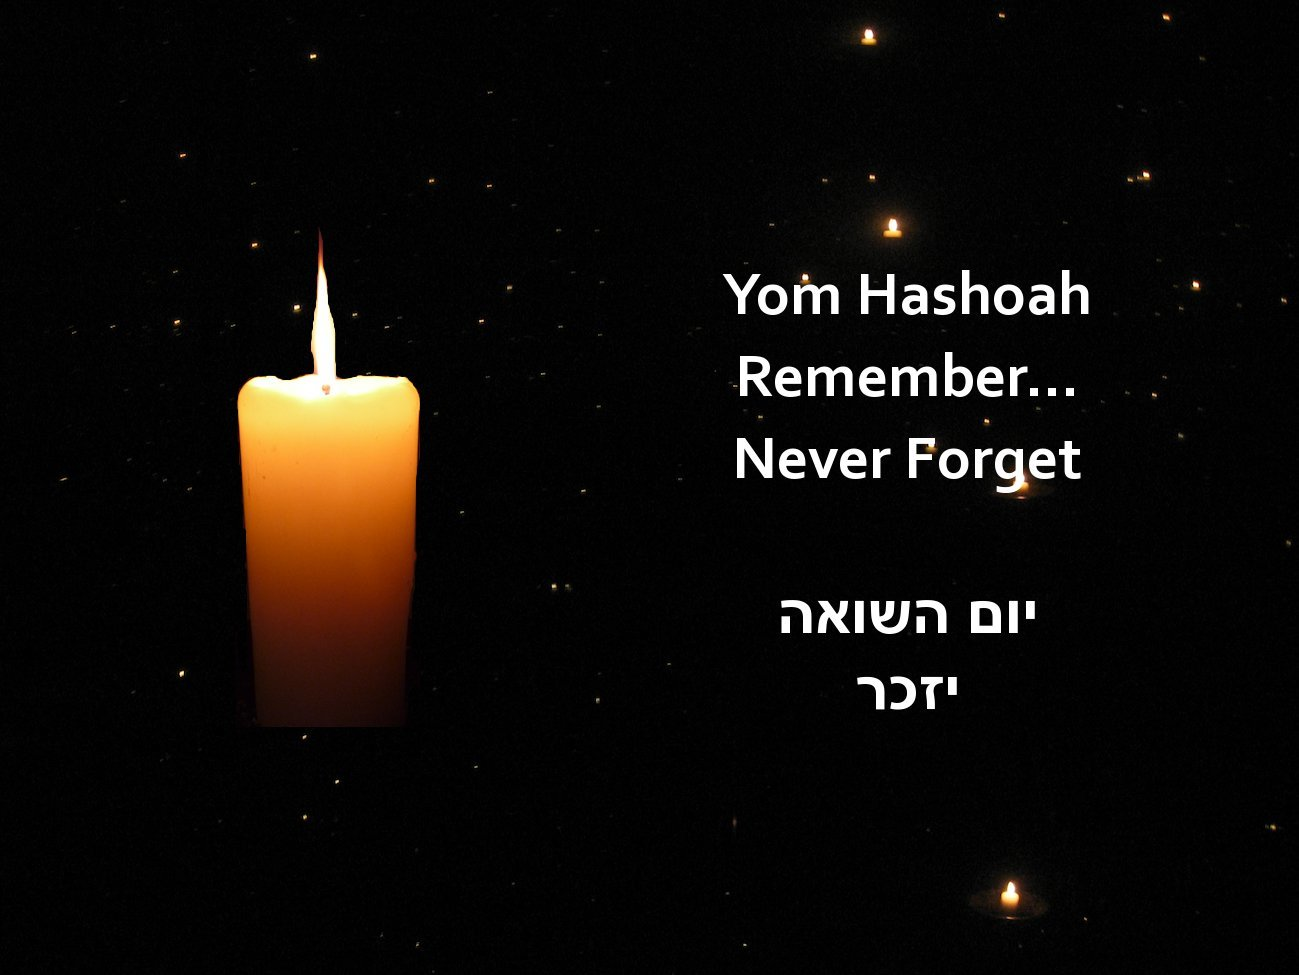 Yom Hashoah Remember